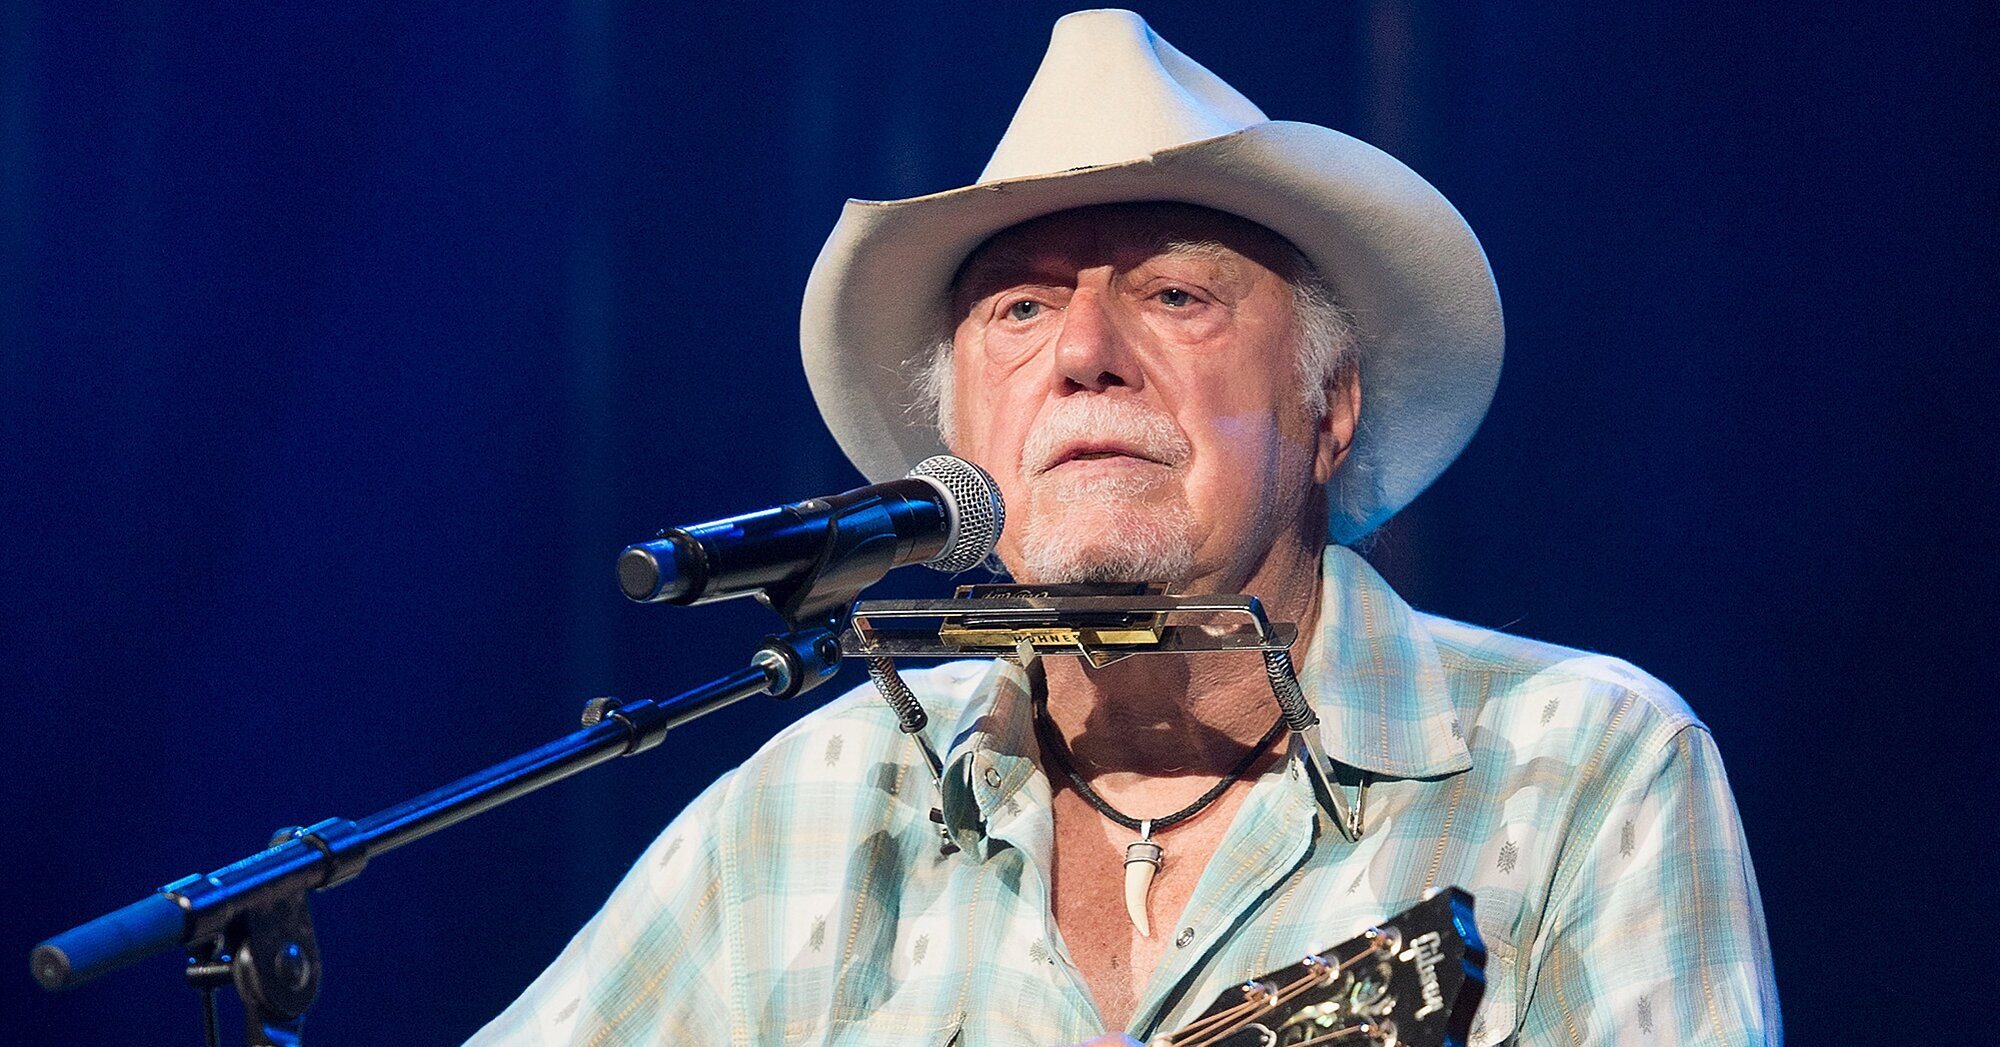 Jerry Jeff Walker, Country Legend and 'Mr. Bojangles' Songwriter, Dies at 78